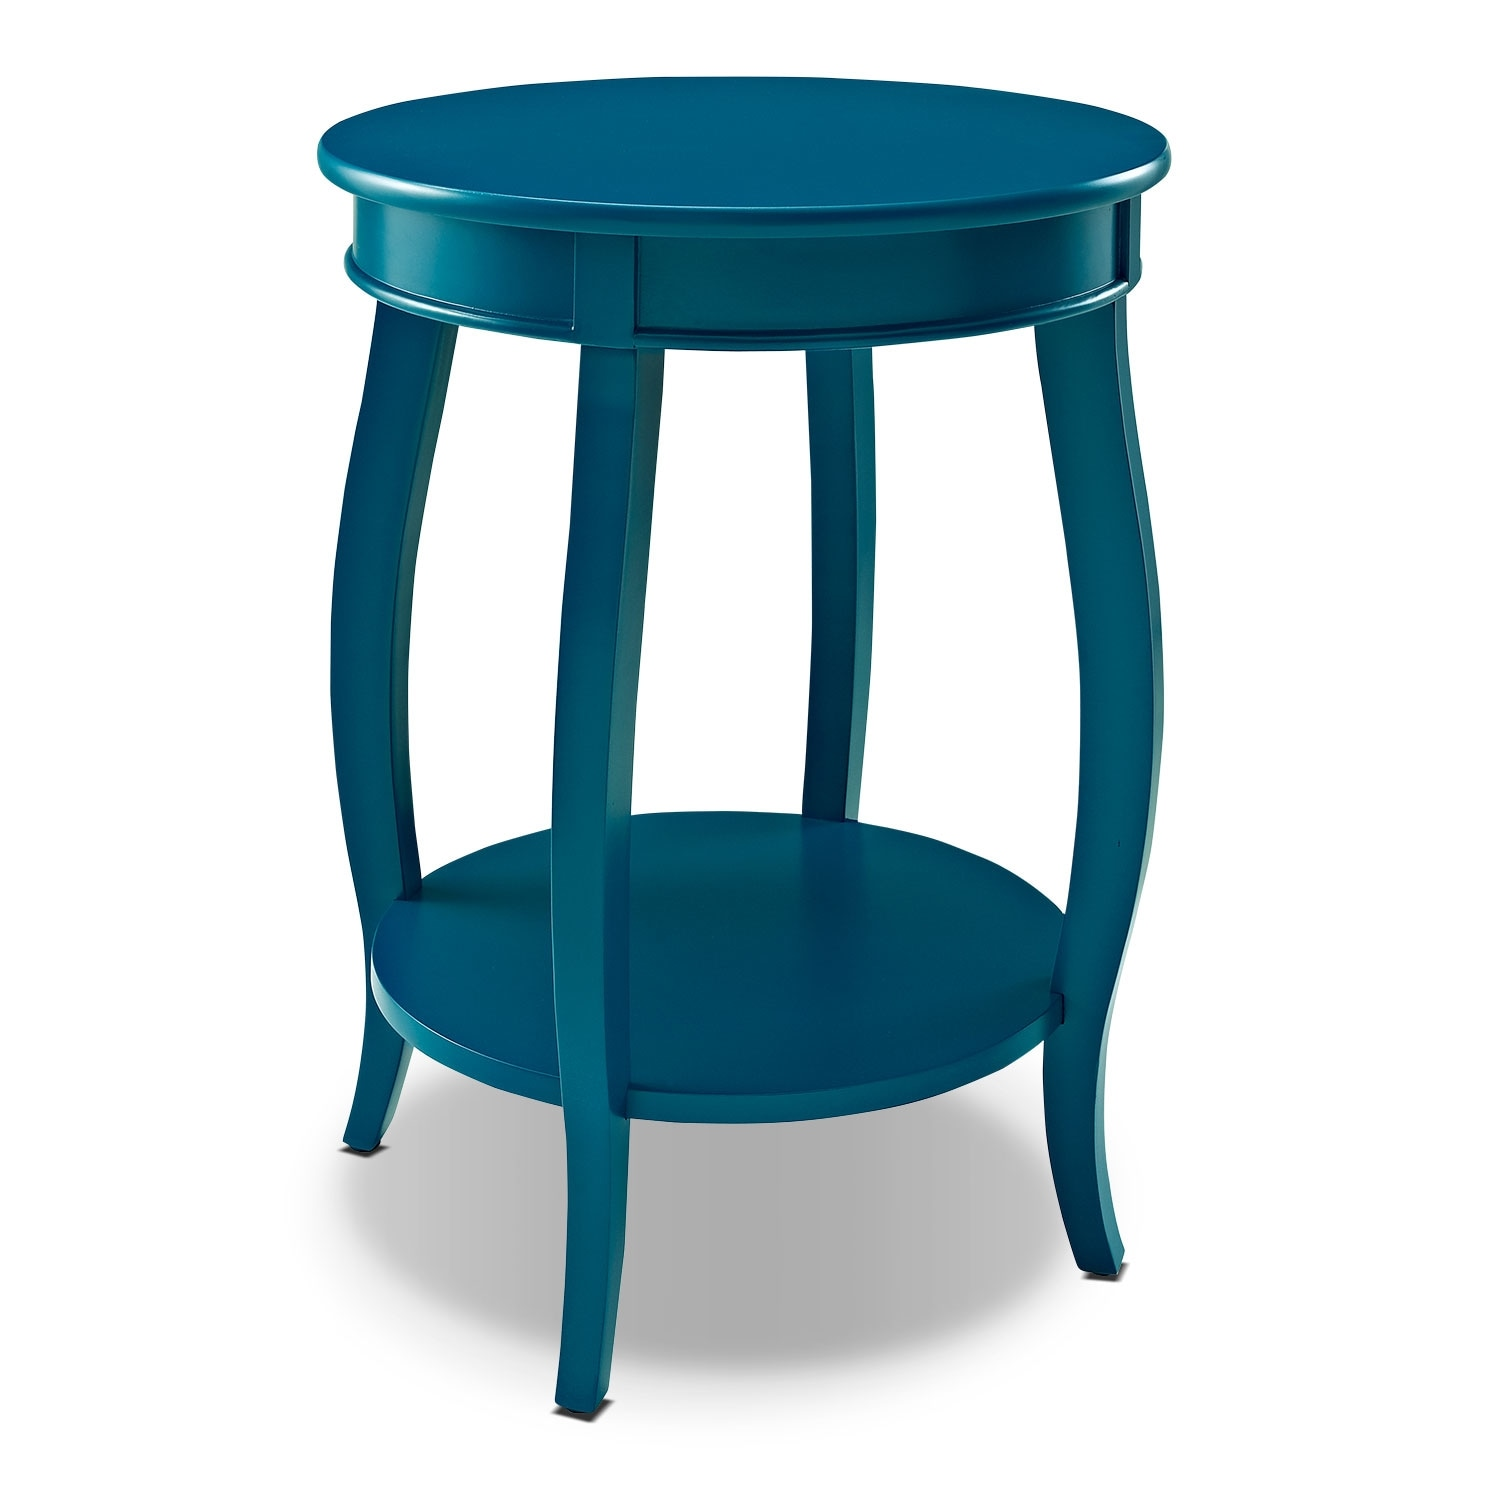 Sydney Accent Table - Teal